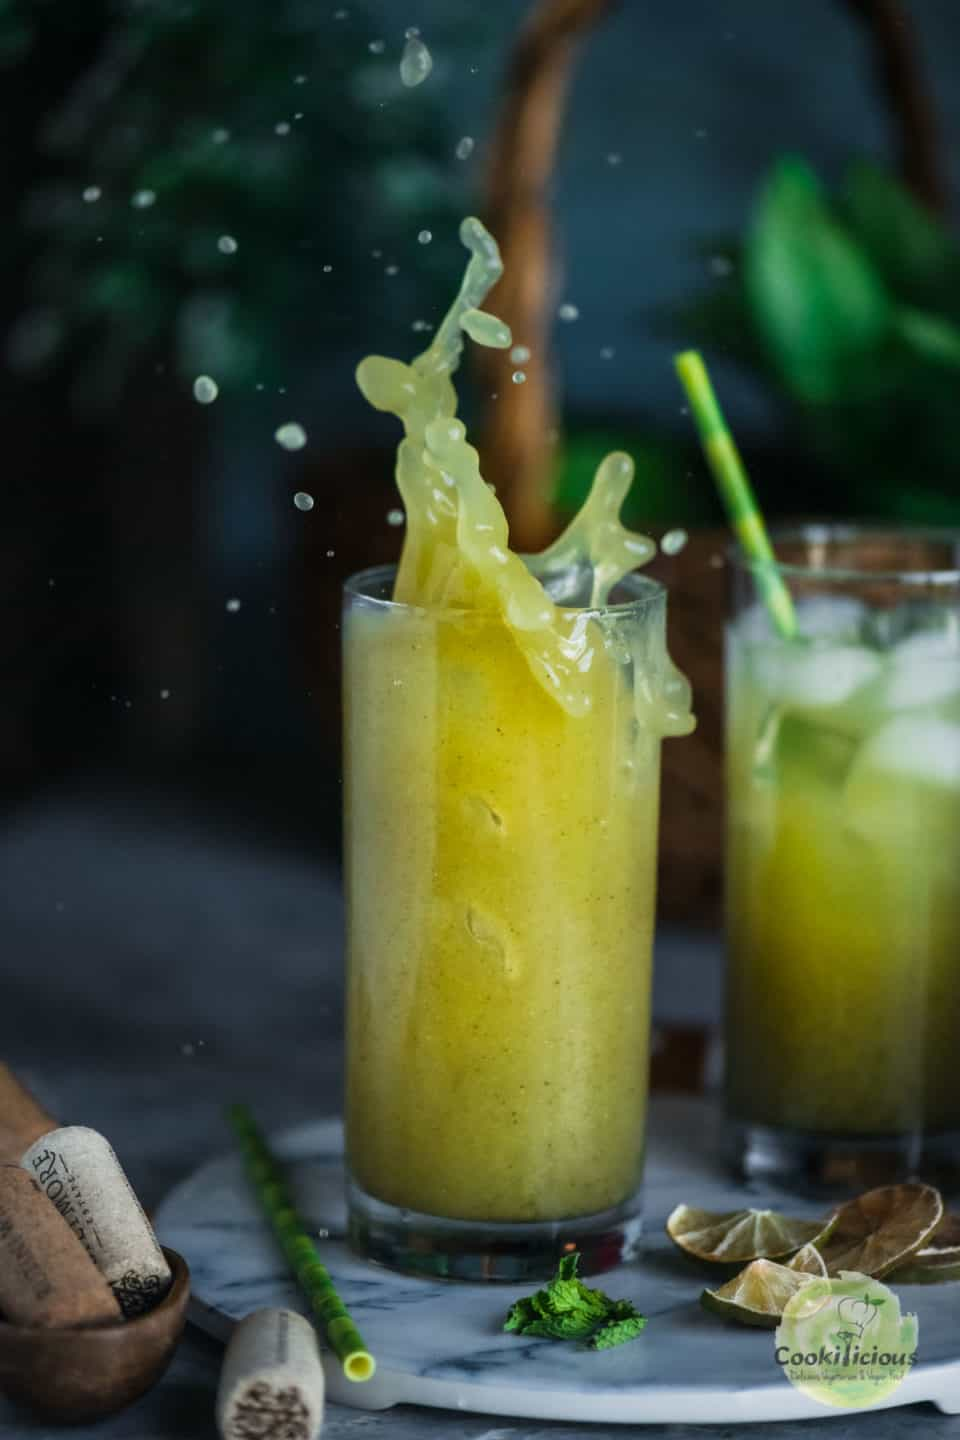 Cucumber Lemonade served in a glass with a splash